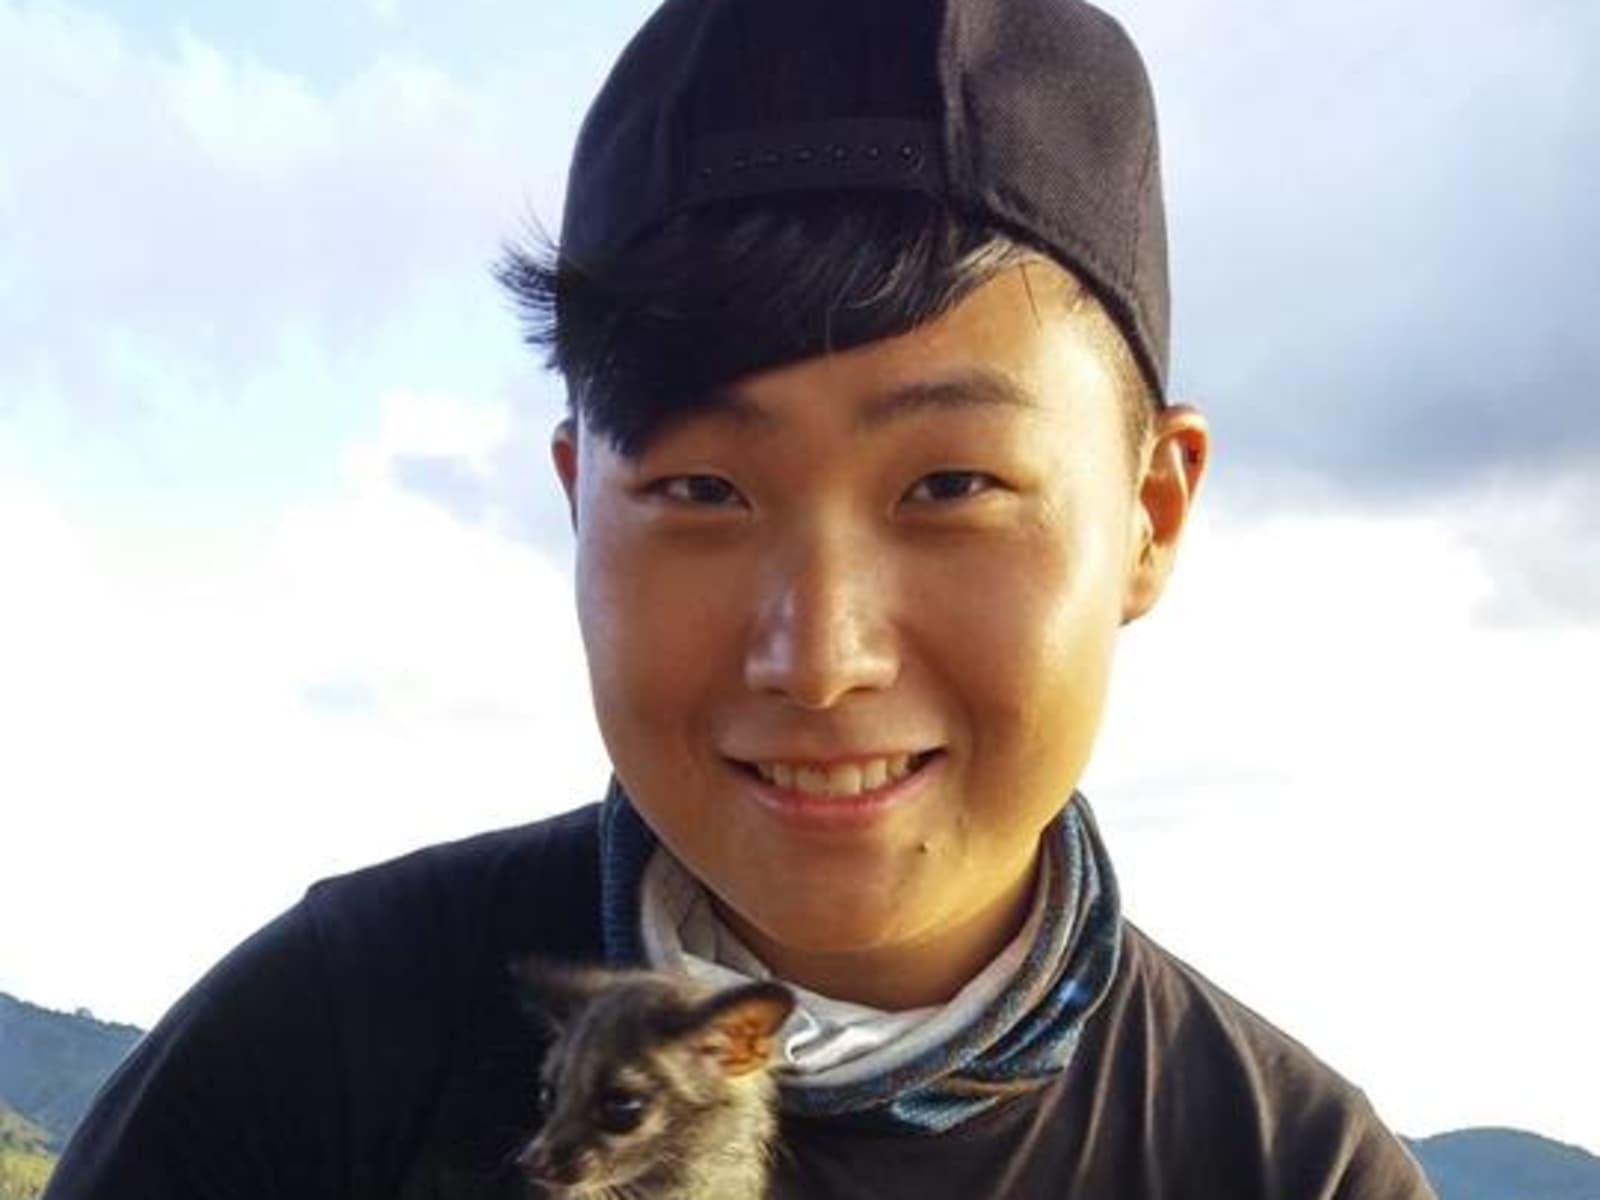 Chang woo from Chicago, Illinois, United States